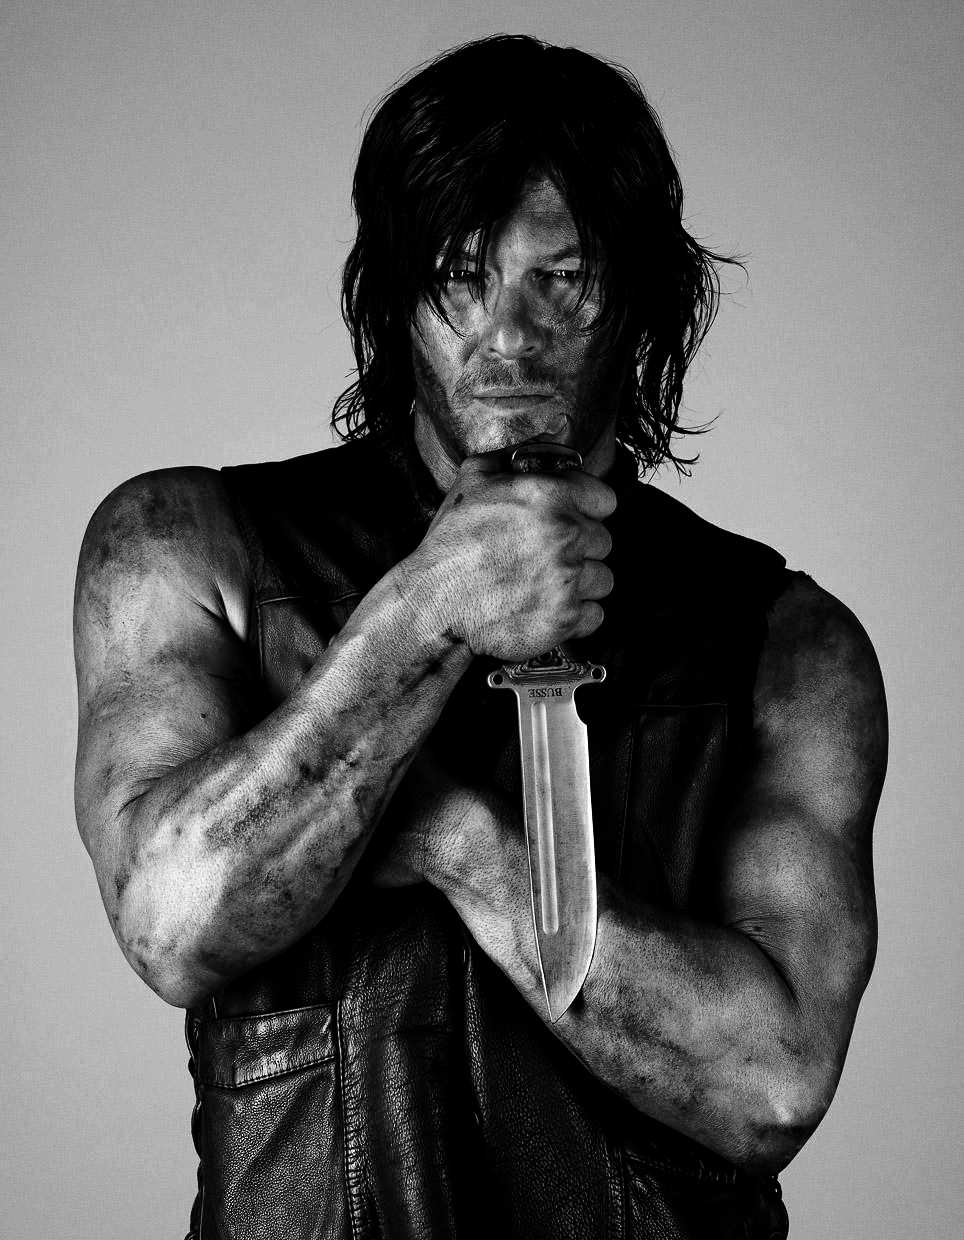 daryl dixon, twd, the walking dead and norman reedus